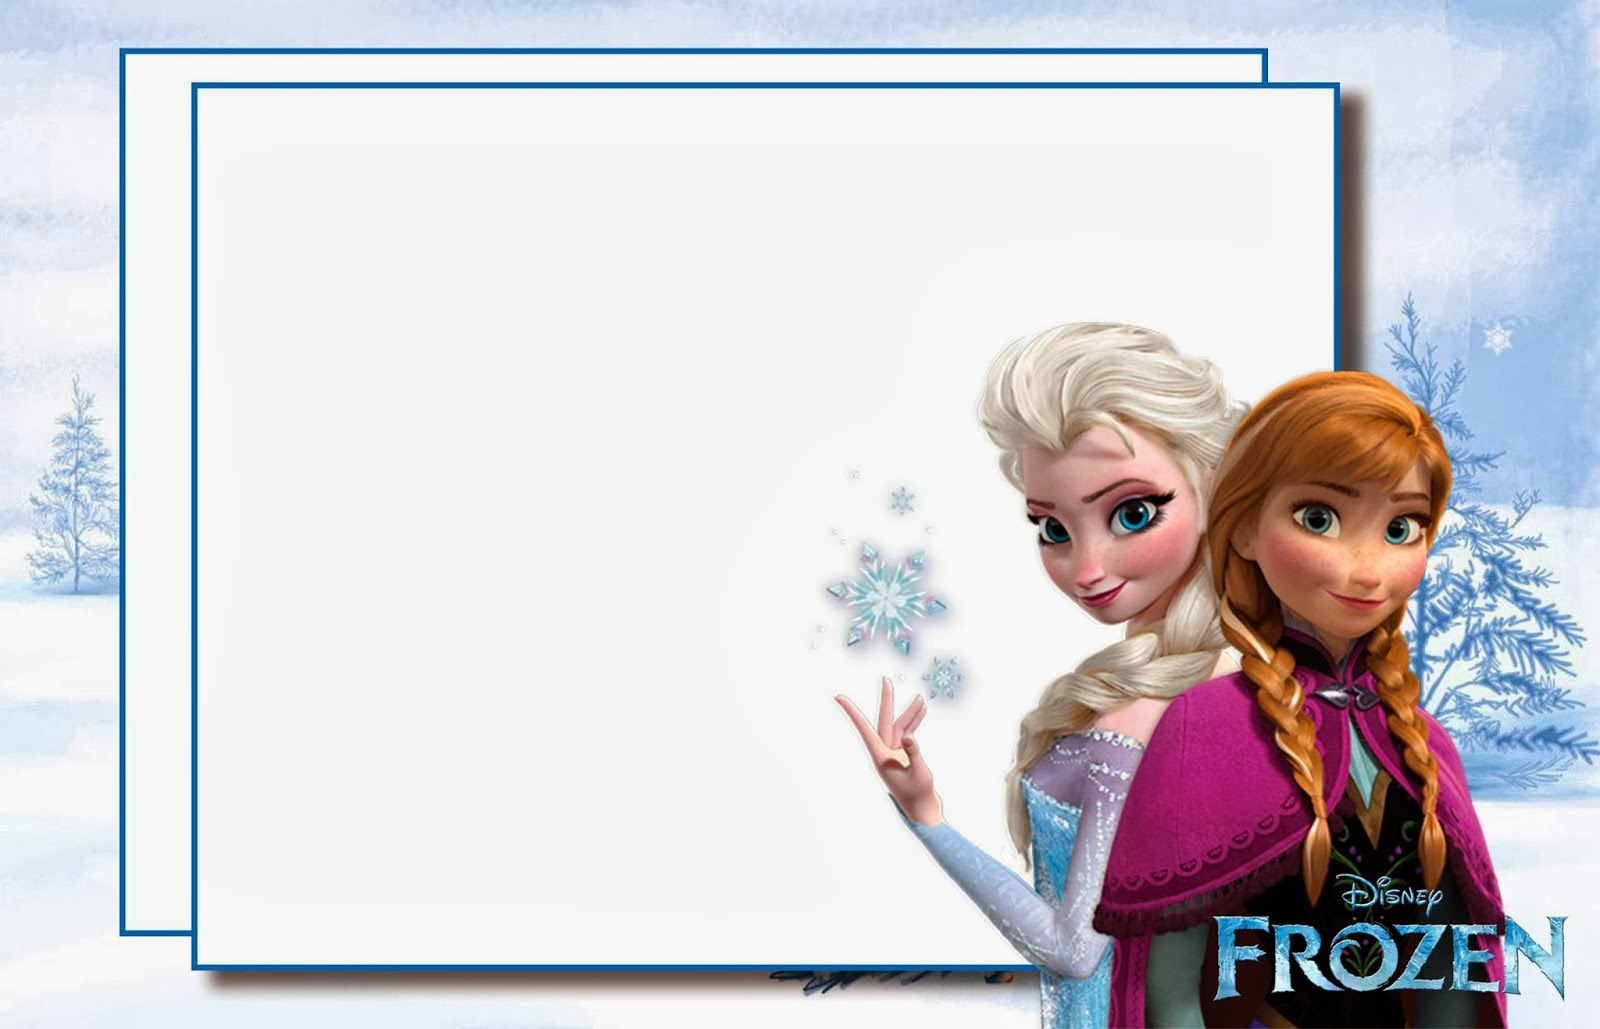 graphic about Frozen Printable Invitations called Frozen Occasion: Totally free Printable Invites. - Oh My Fiesta! within